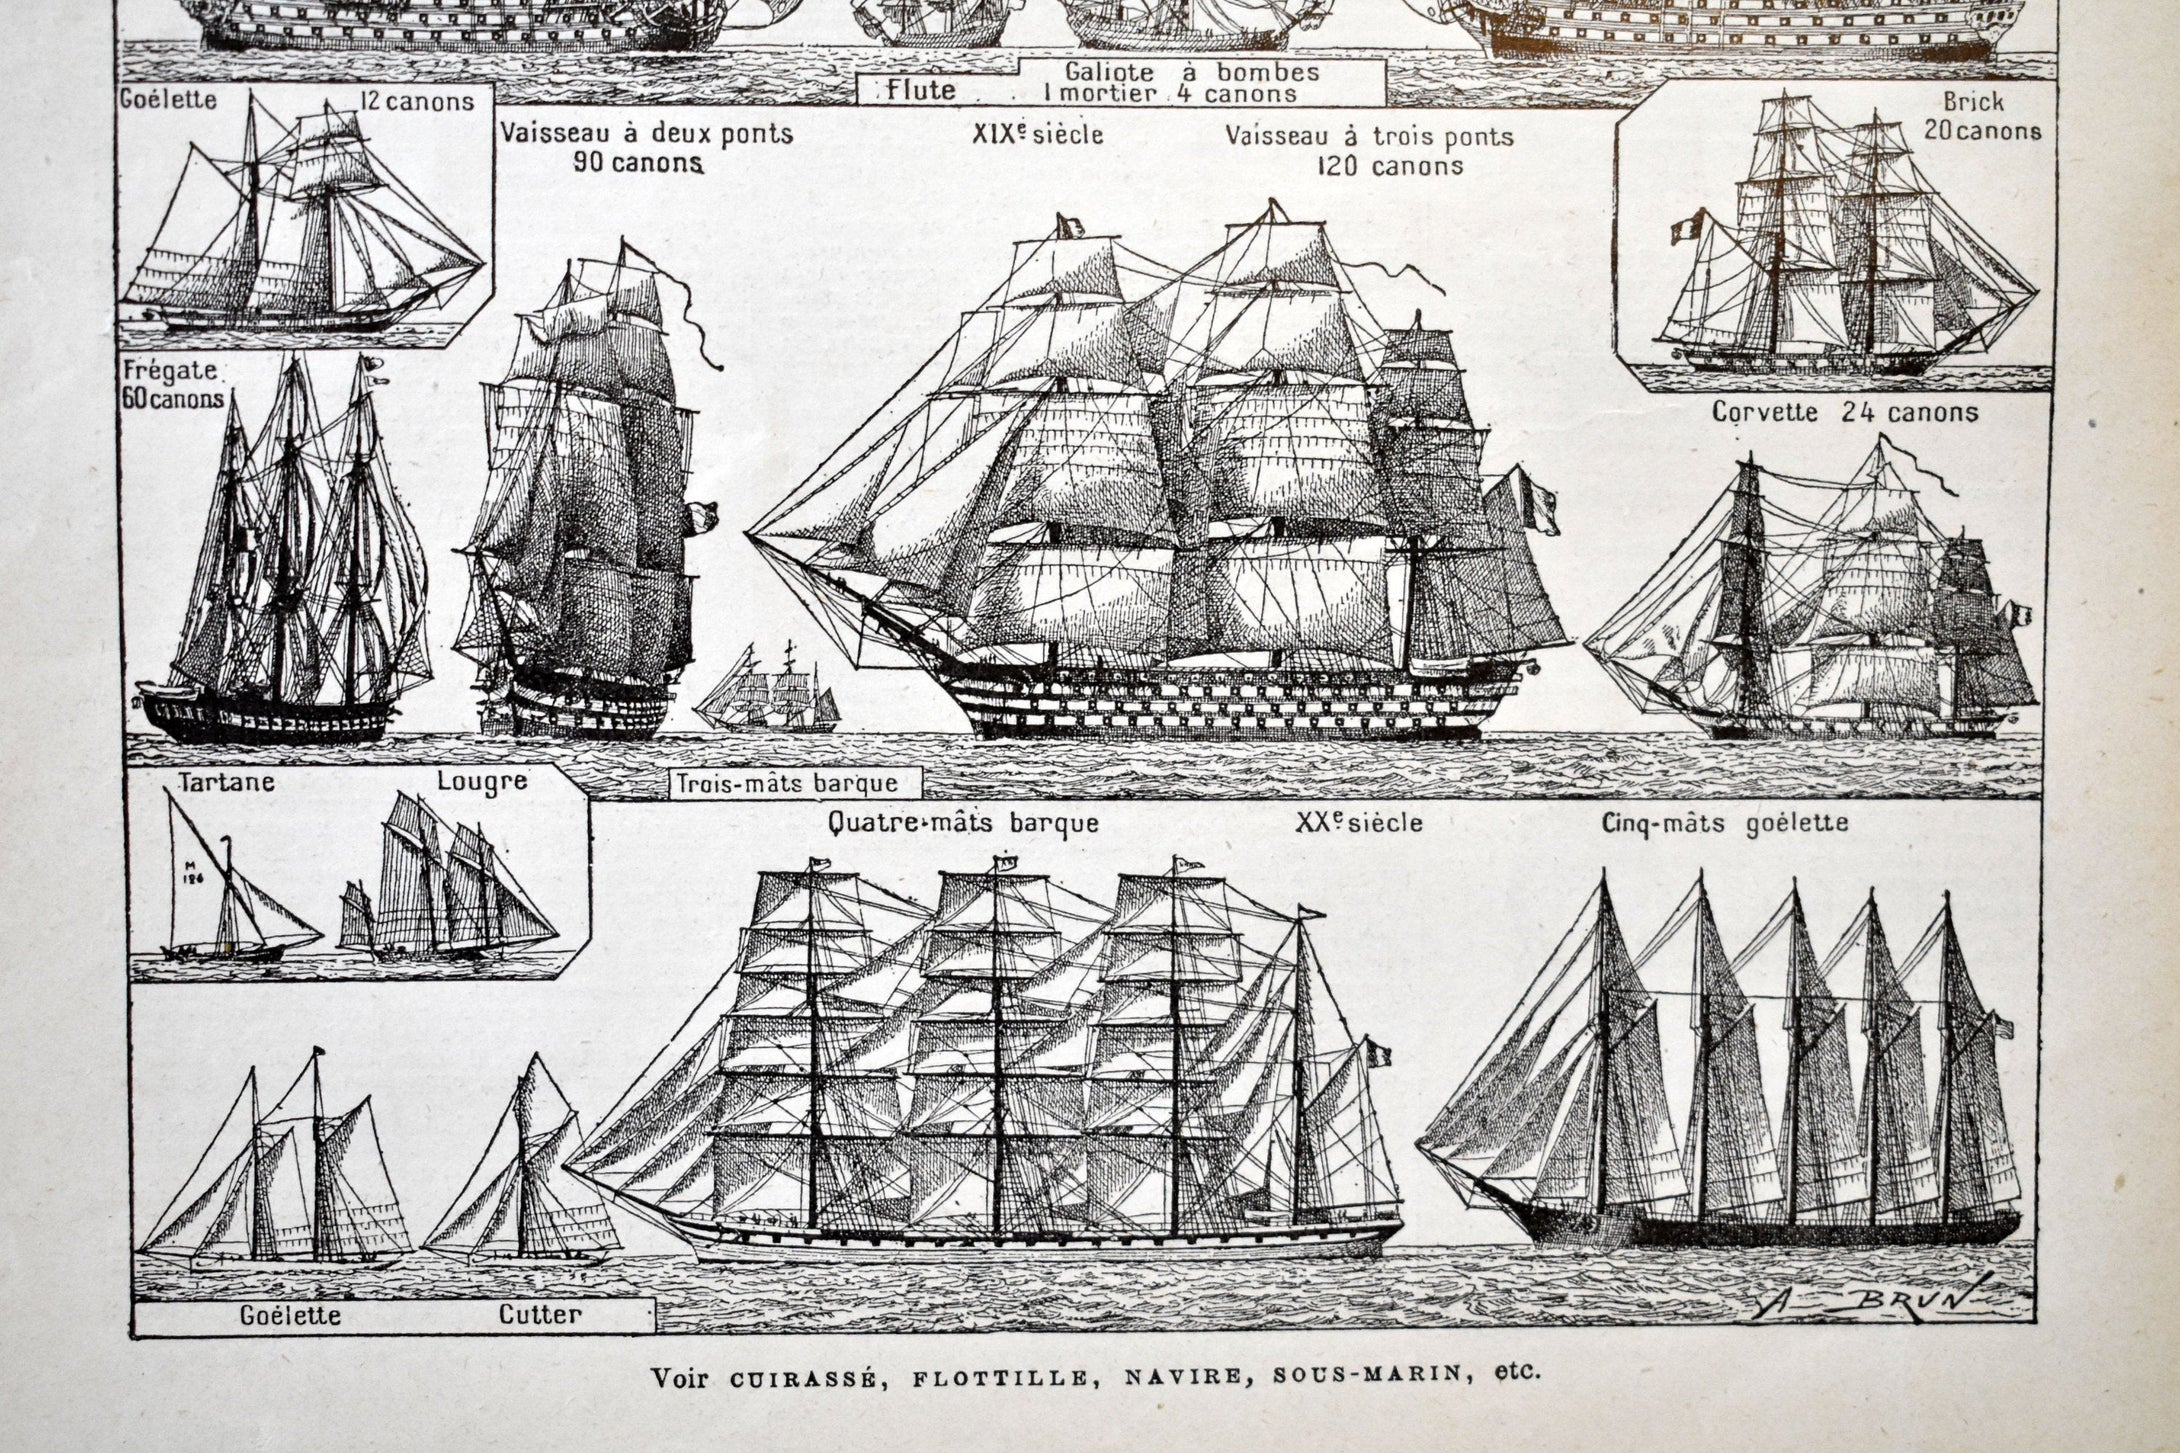 Antique Boat and Ship Lithographs - 11.5